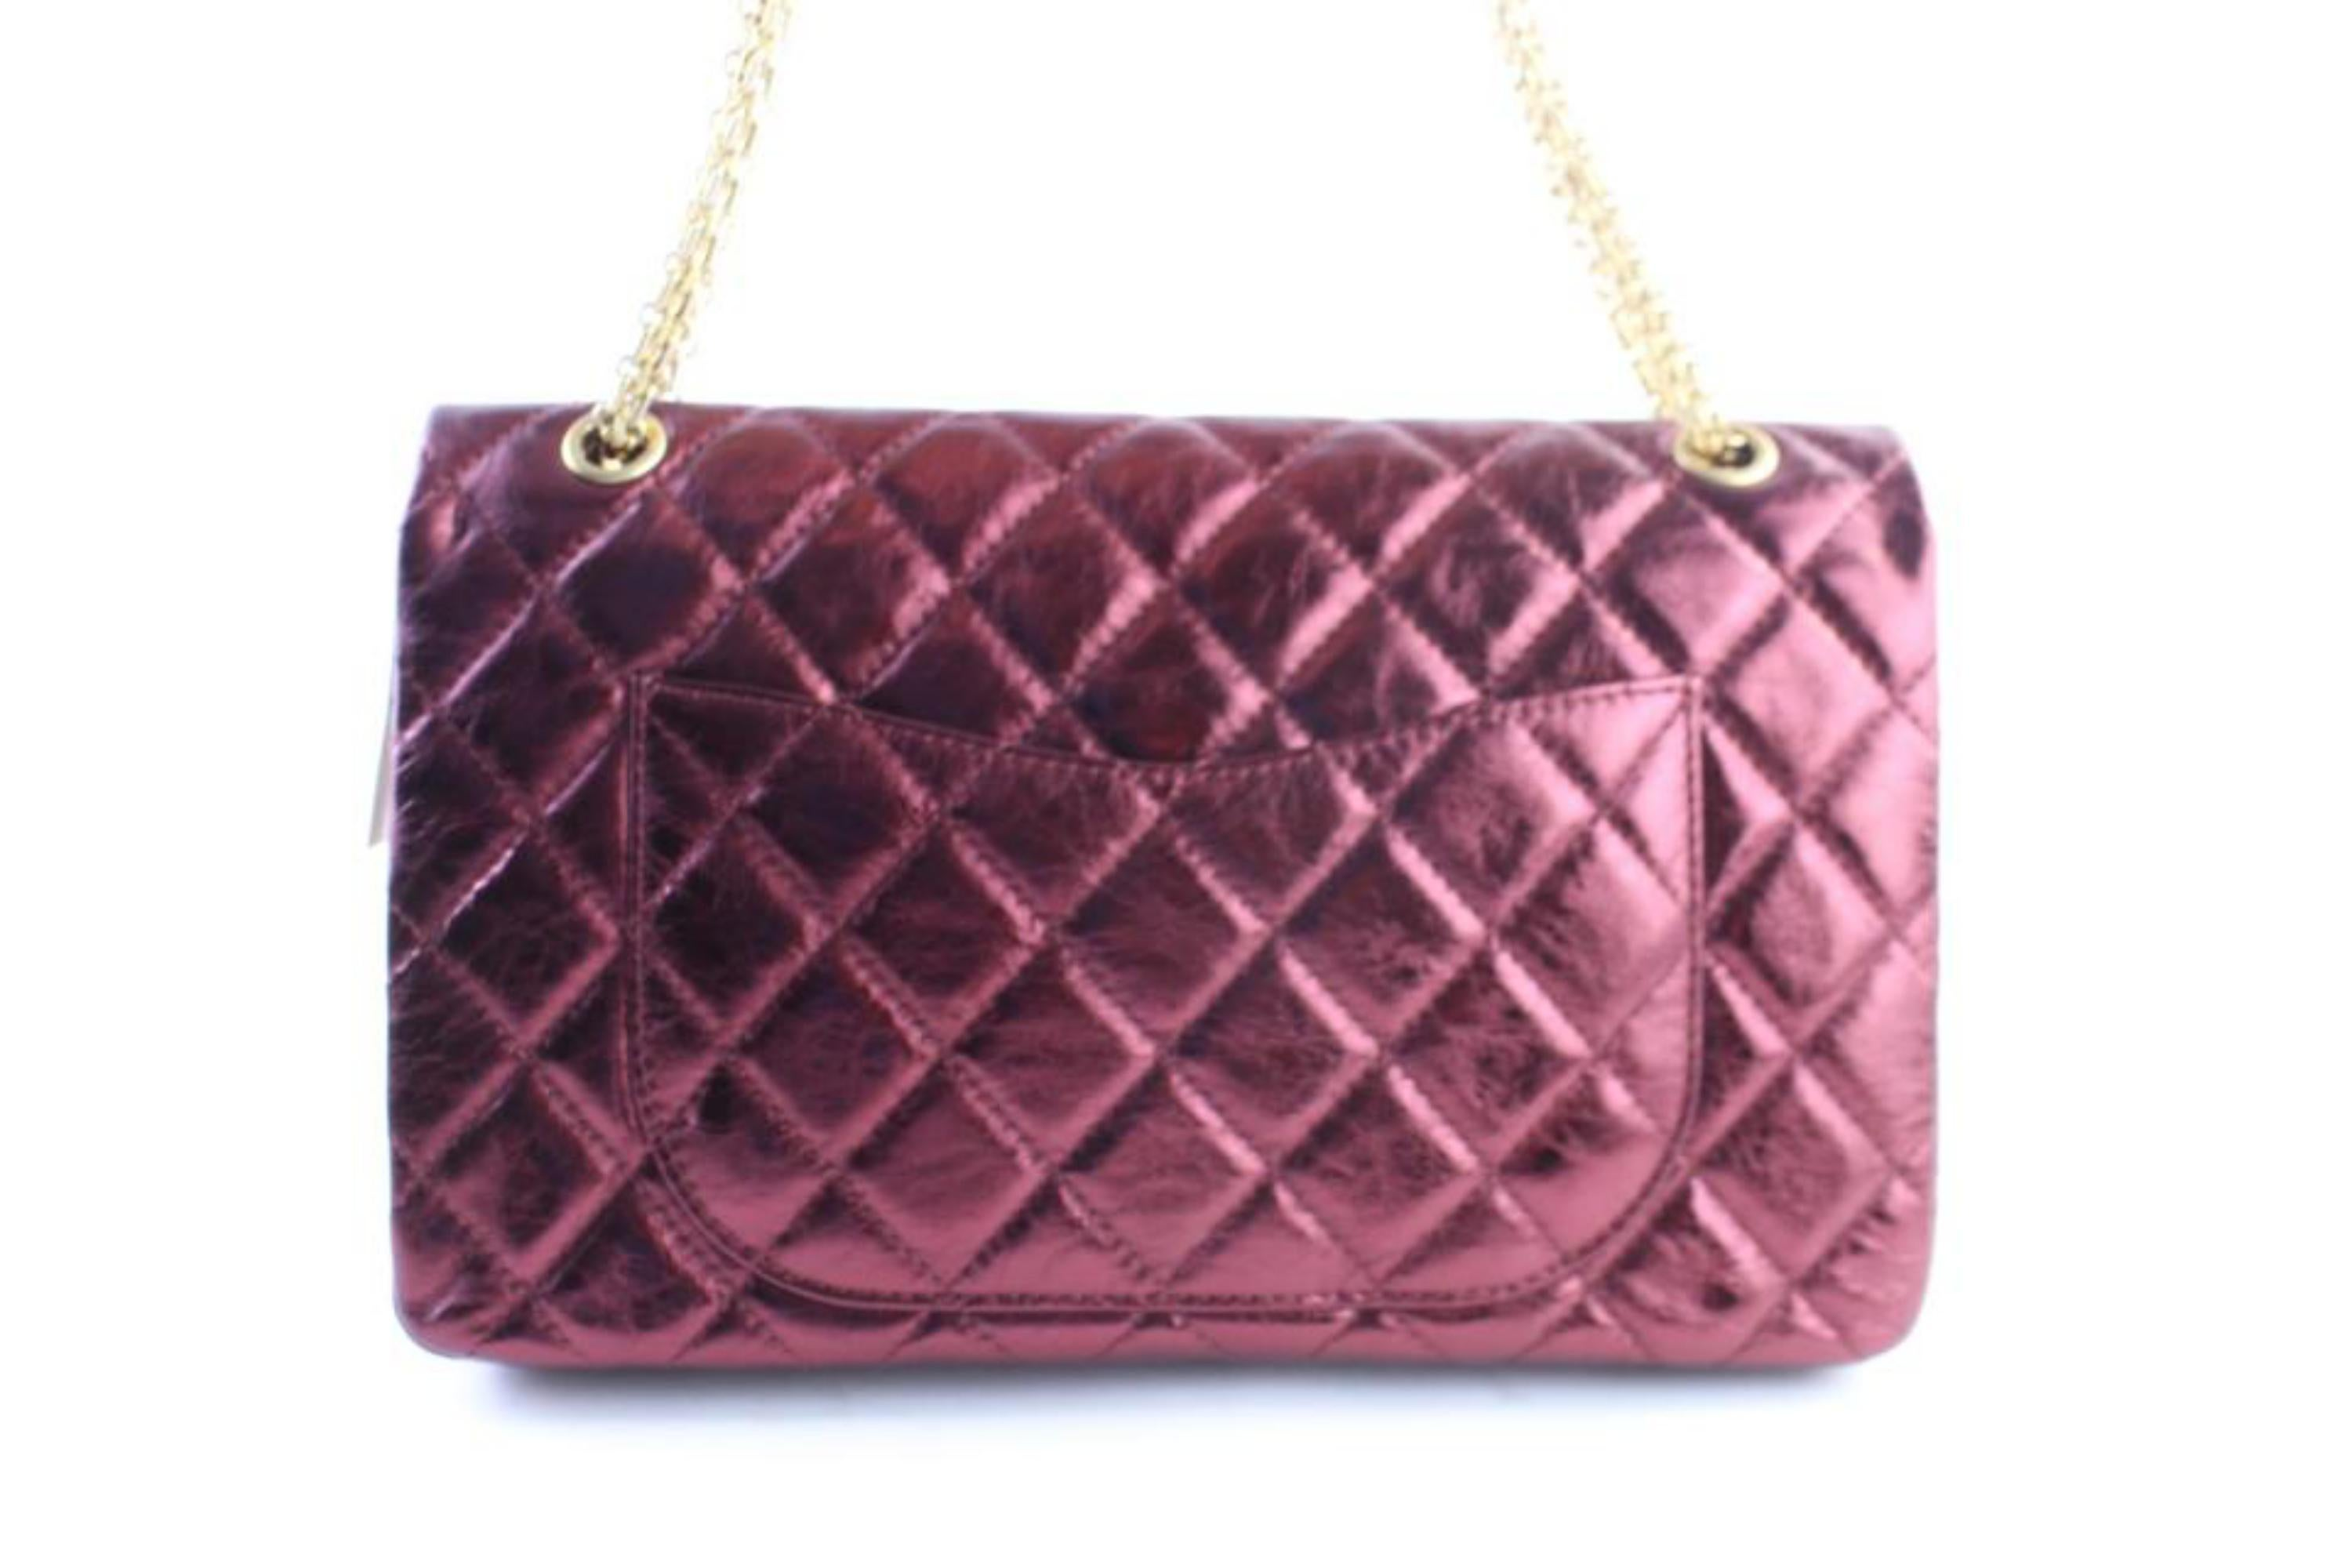 c17884cfd489b6 Chanel 2.55 Reissue 227 Flap 11cr0522 Metallic Burgundy Quilted Shoulder Bag  For Sale at 1stdibs